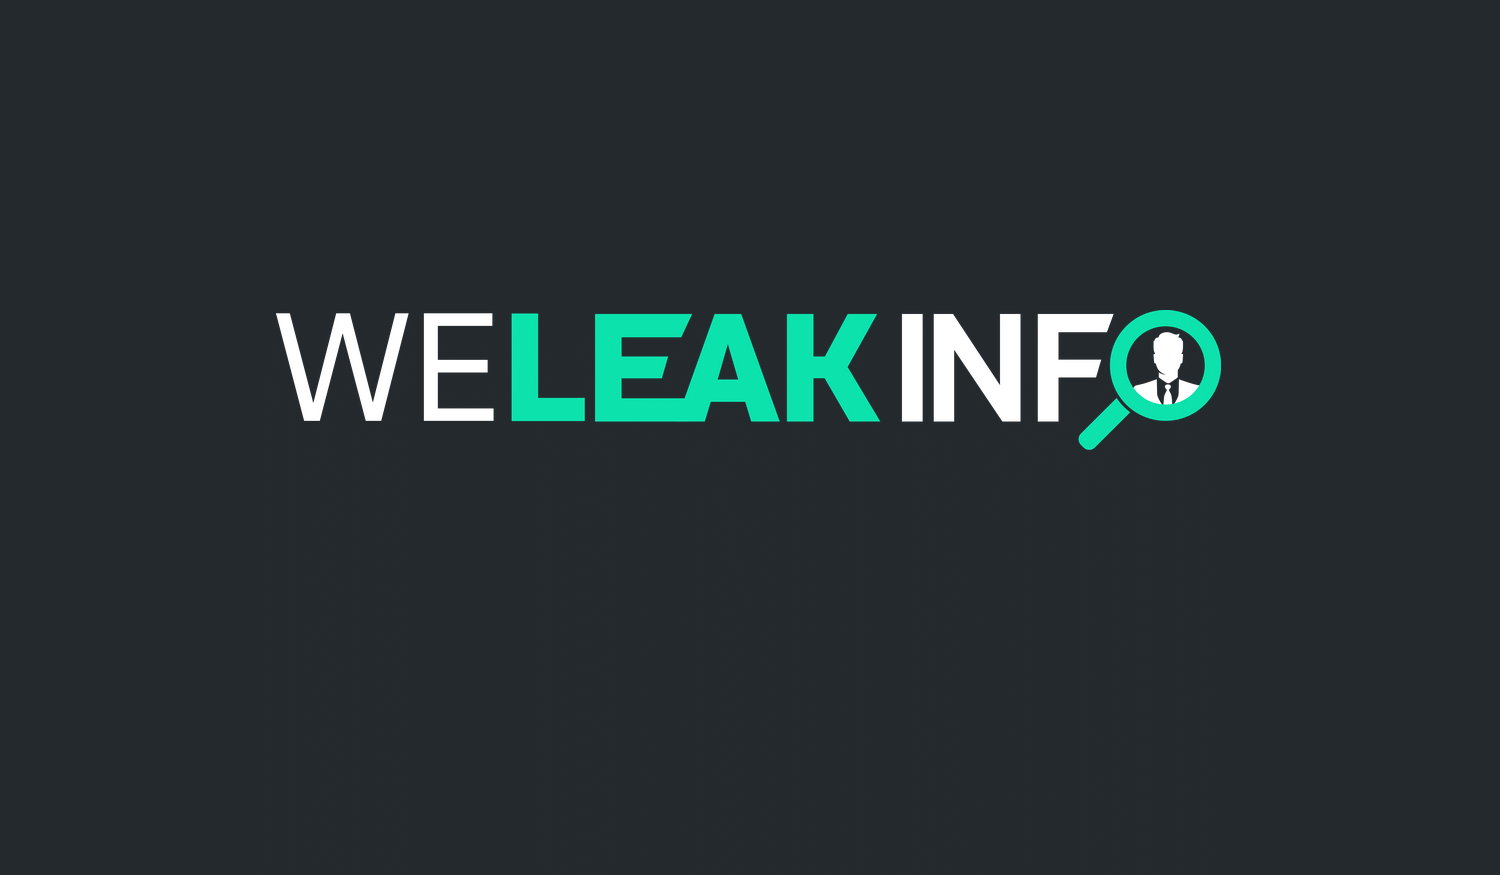 Operator of WeLeakInfo database marketplace sentenced to two years in prison